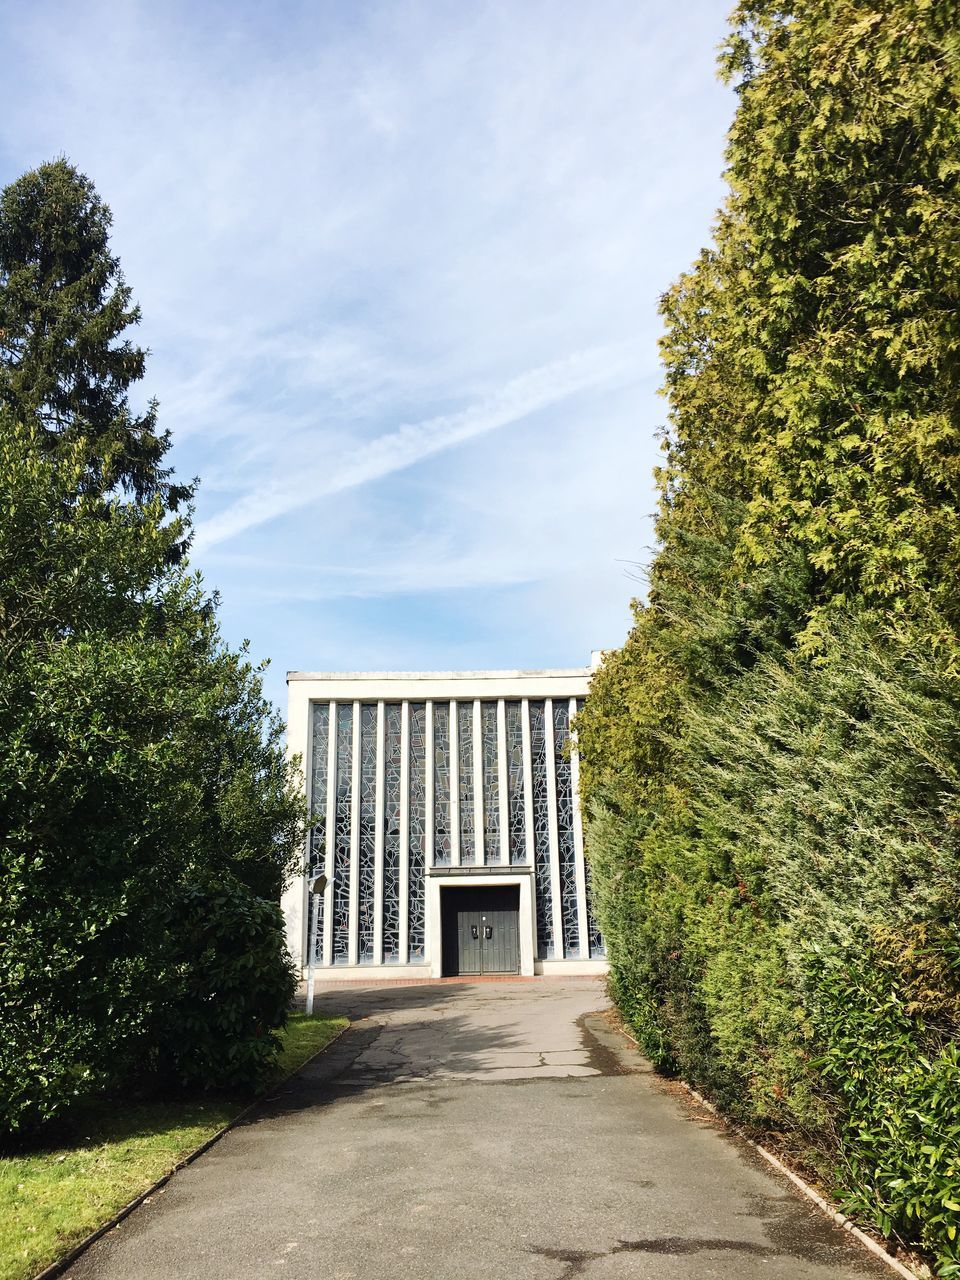 tree, architecture, built structure, day, sky, building exterior, history, outdoors, no people